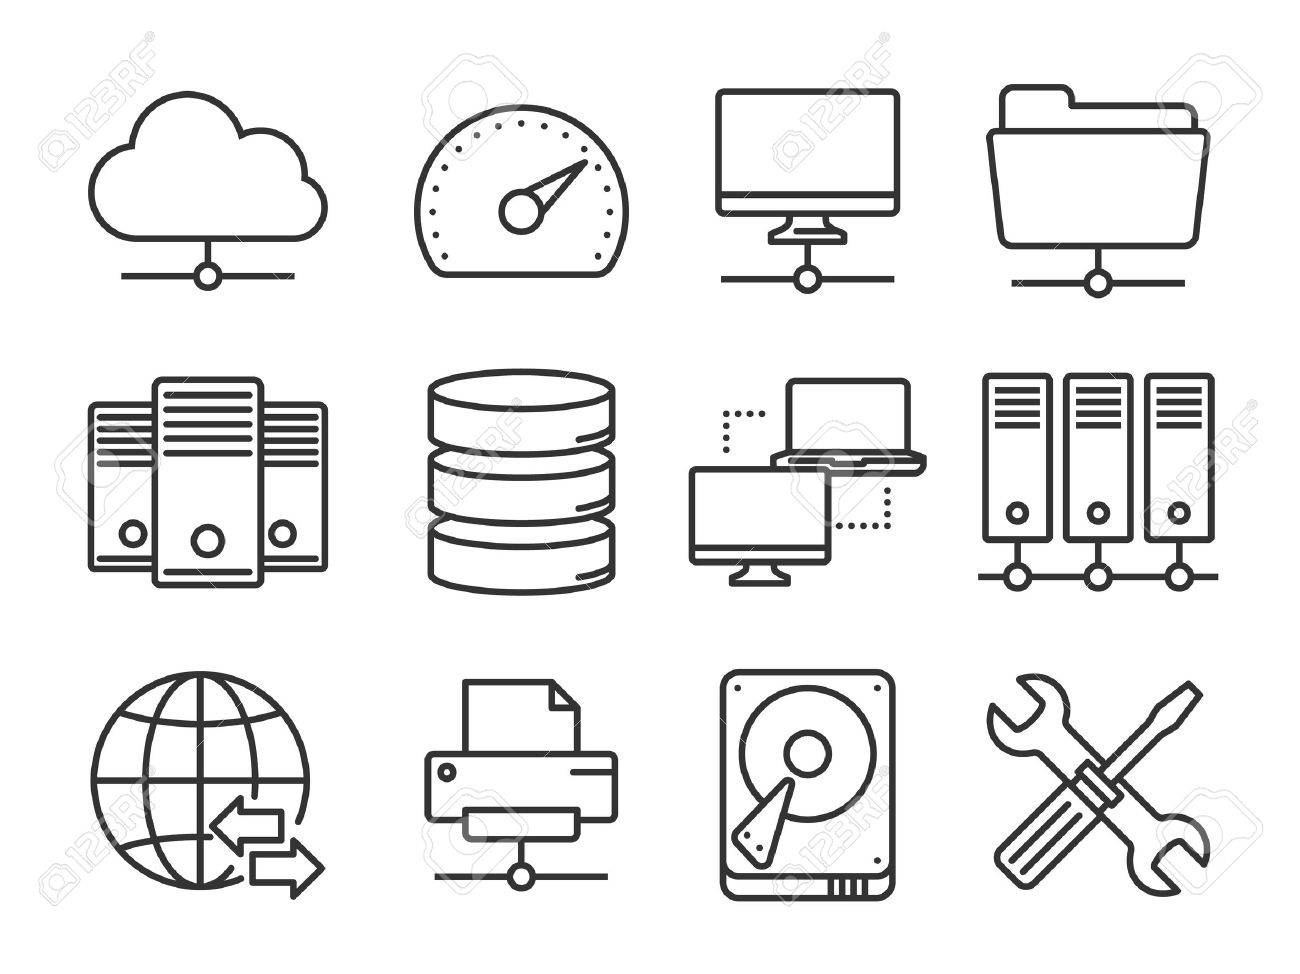 Internet and network icons set - 36145522